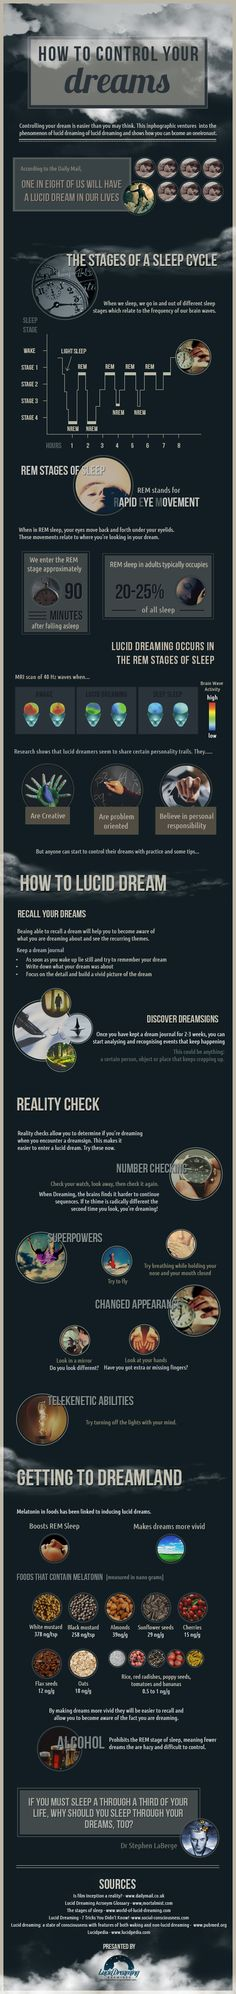 Infographic on Lucid Dreaming.. interesting!